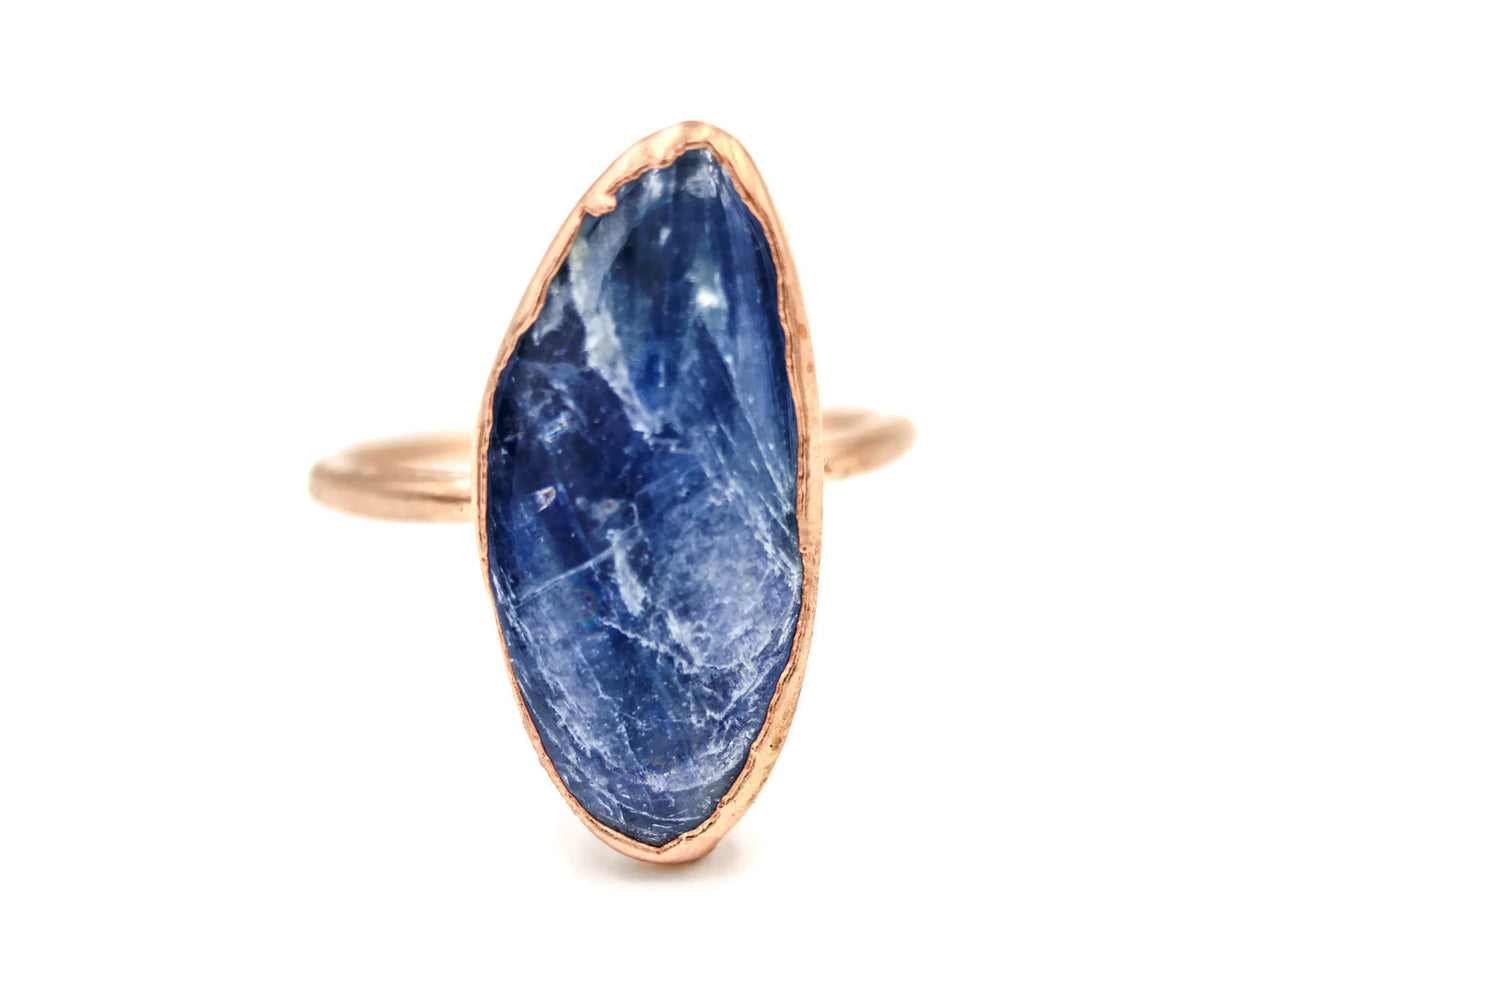 Polished Blue Kyanite Ring-The Fox And Stone